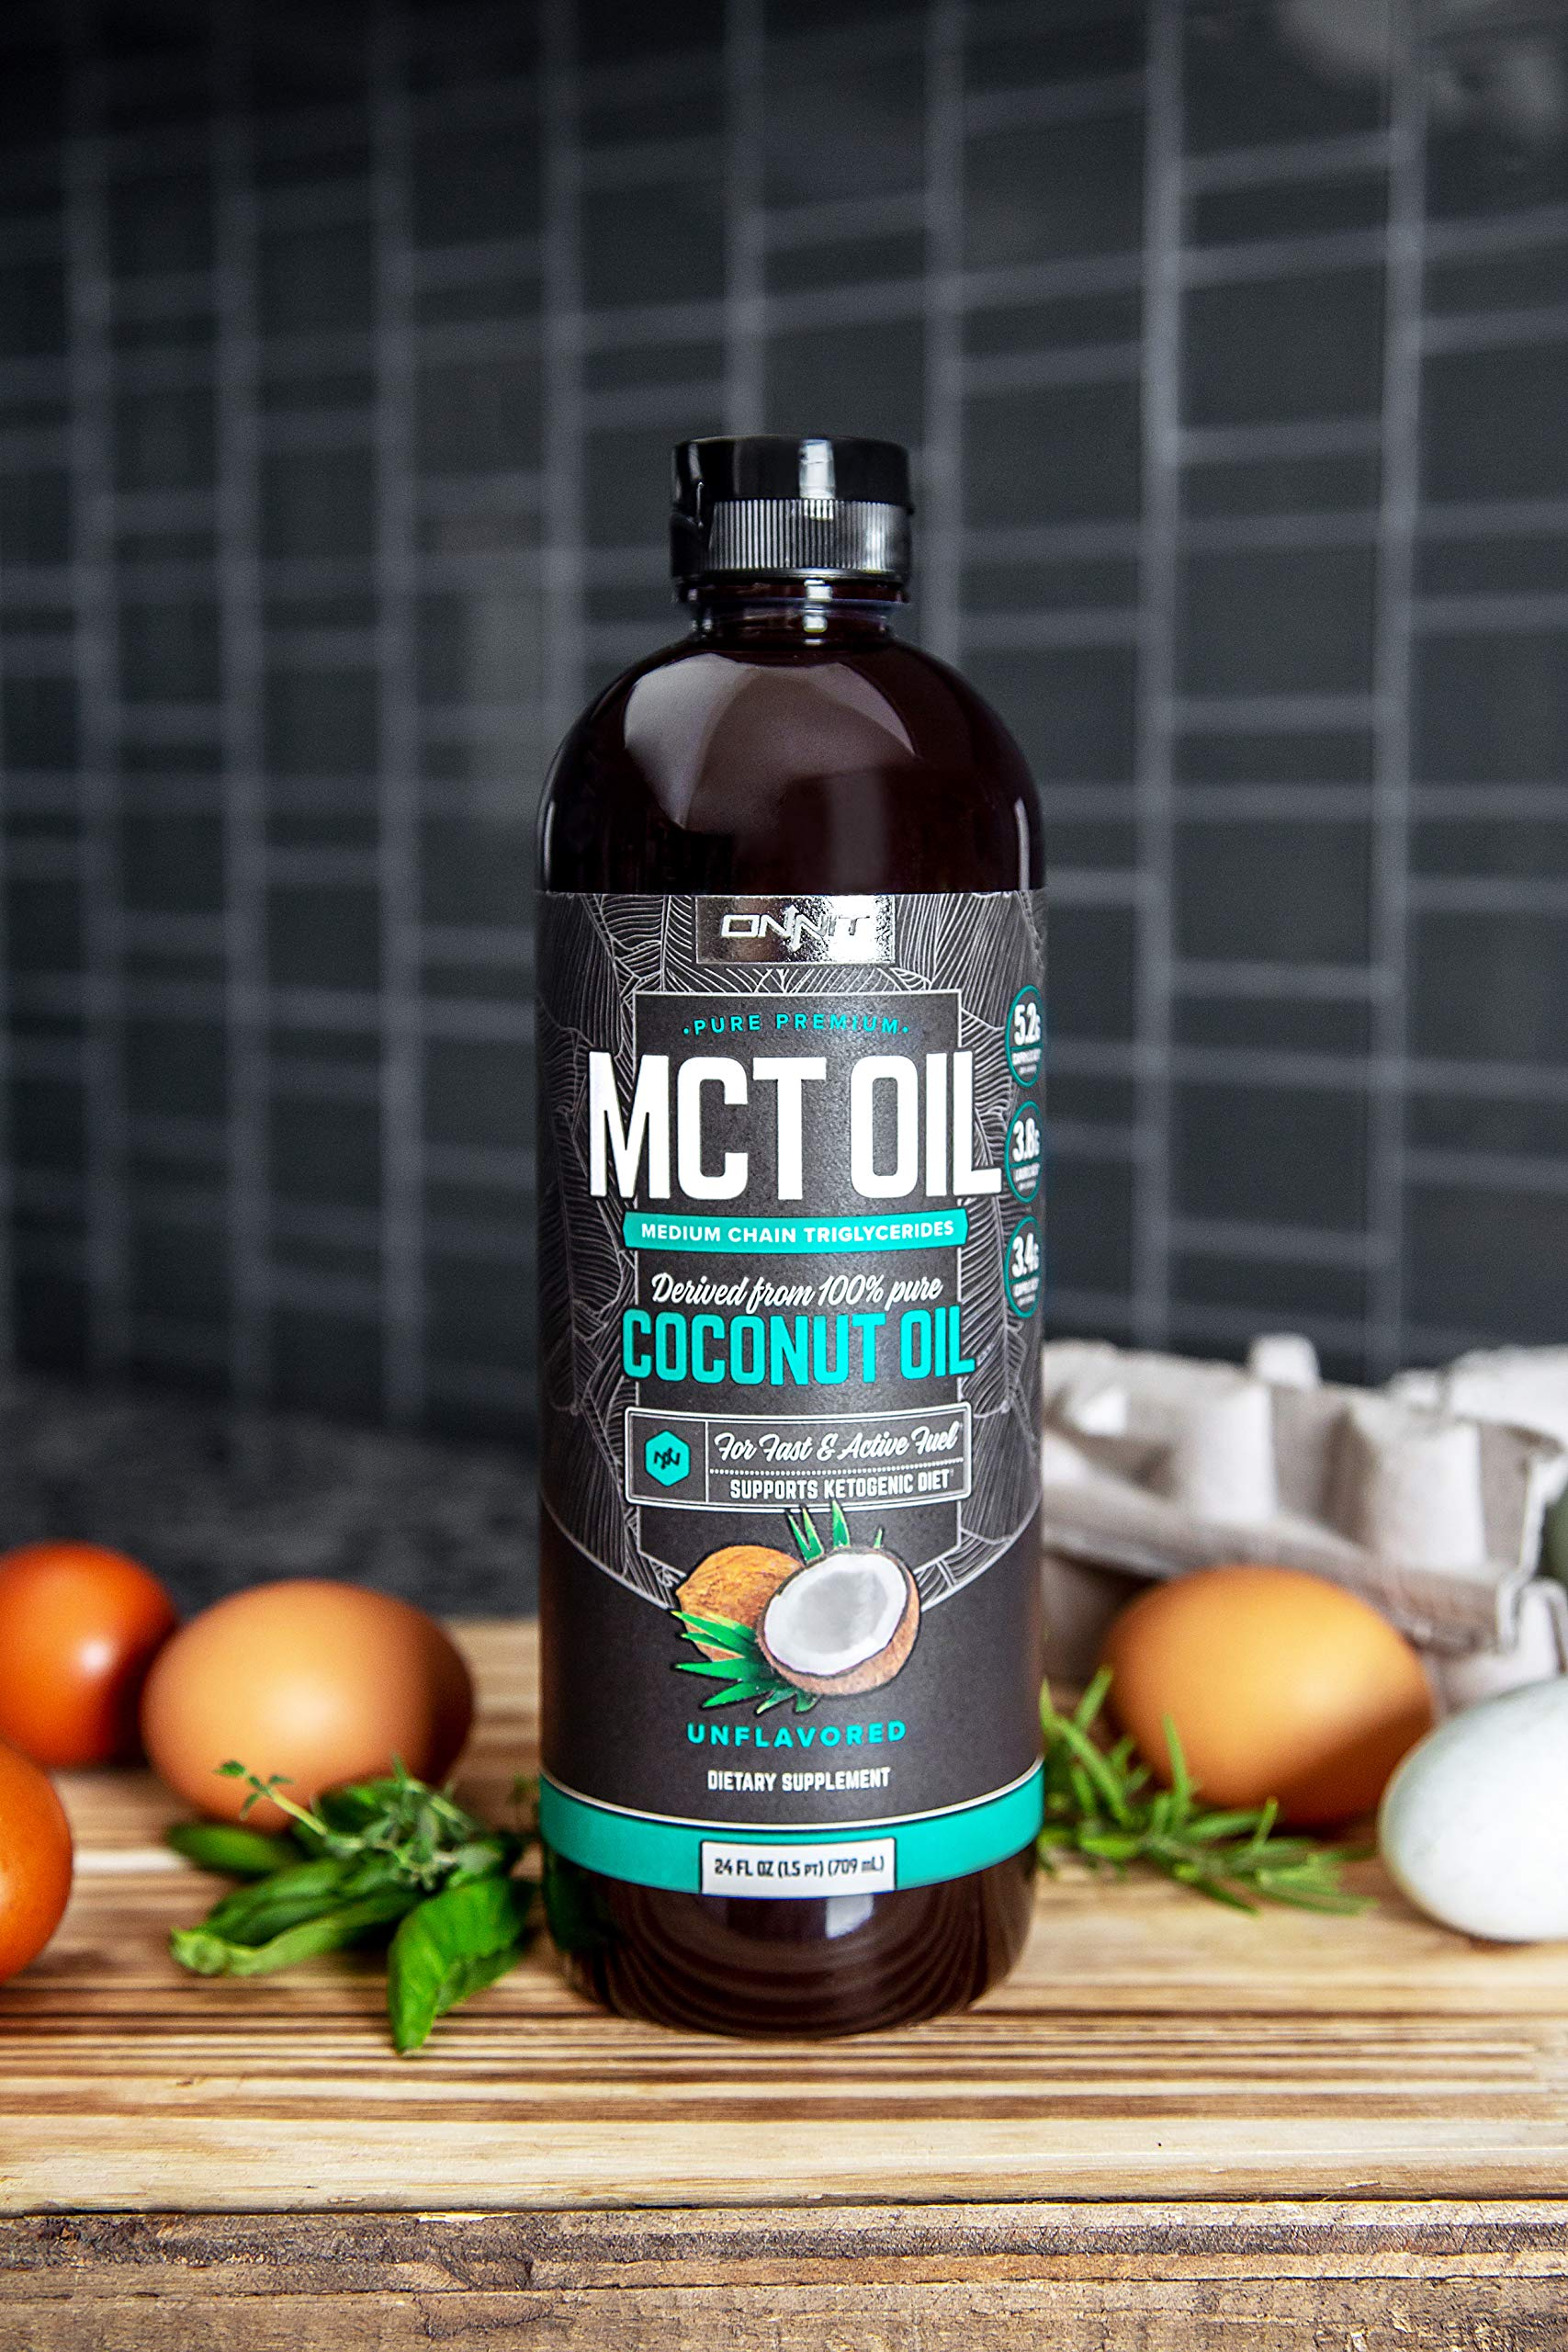 Onnit MCT Oil - Pure MCT Coconut Oil, Ketogenic Diet and Paleo Optimized with C8, C10, Lauric Acid - Perfect for Coffee, Shakes, and Cooking (Flavorless - 24oz) by ONNIT (Image #7)